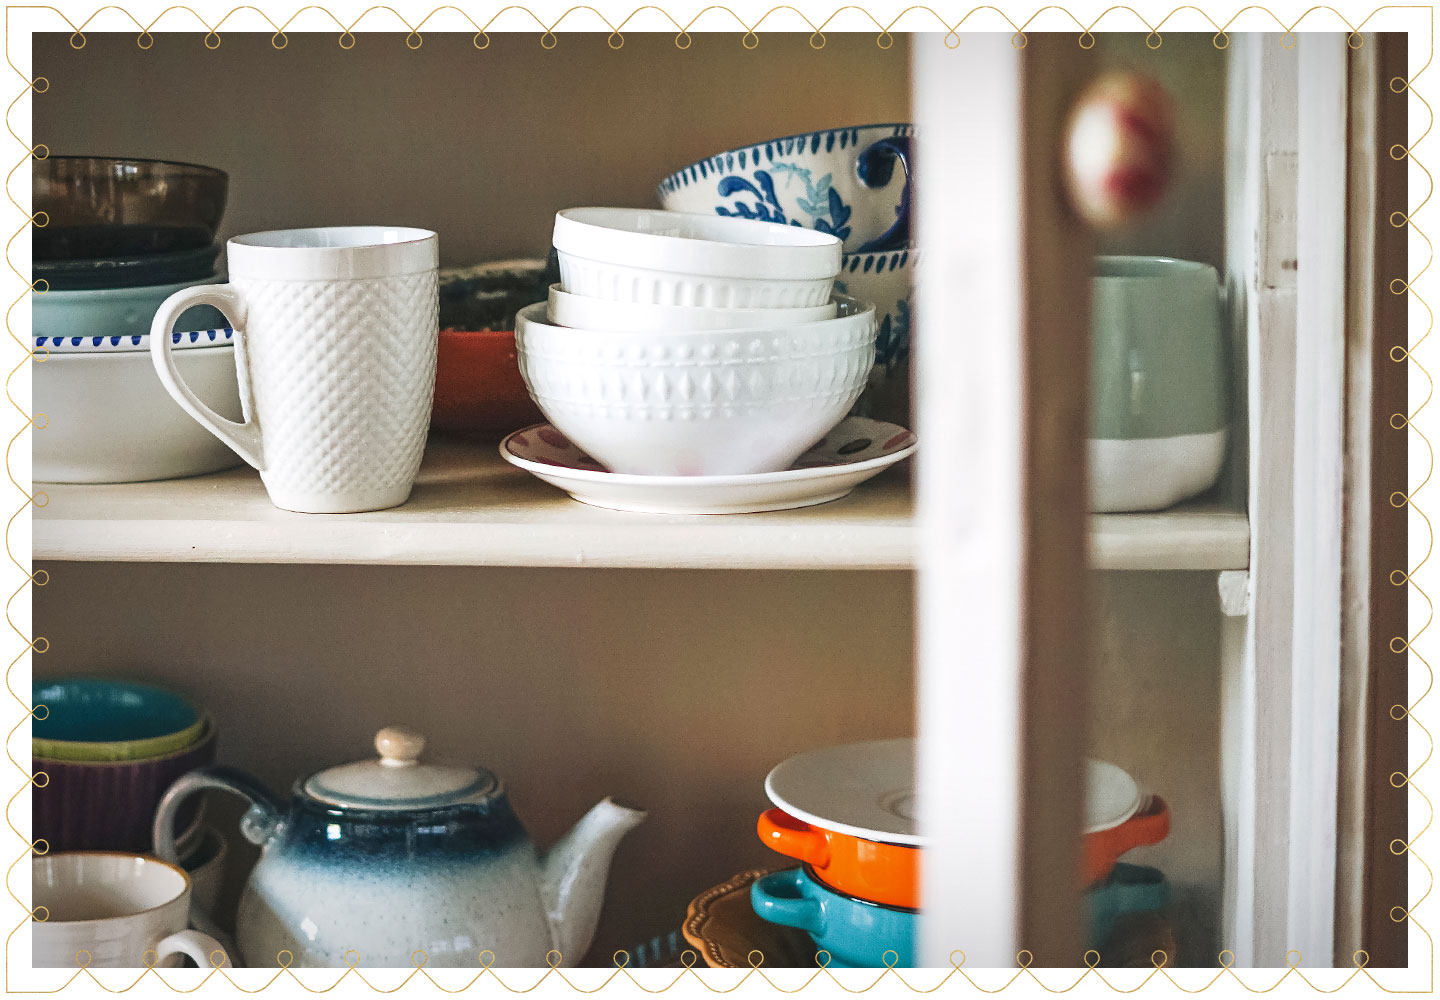 porcelain dishes like mugs, bowls and plates in a cabinet with an open glass door